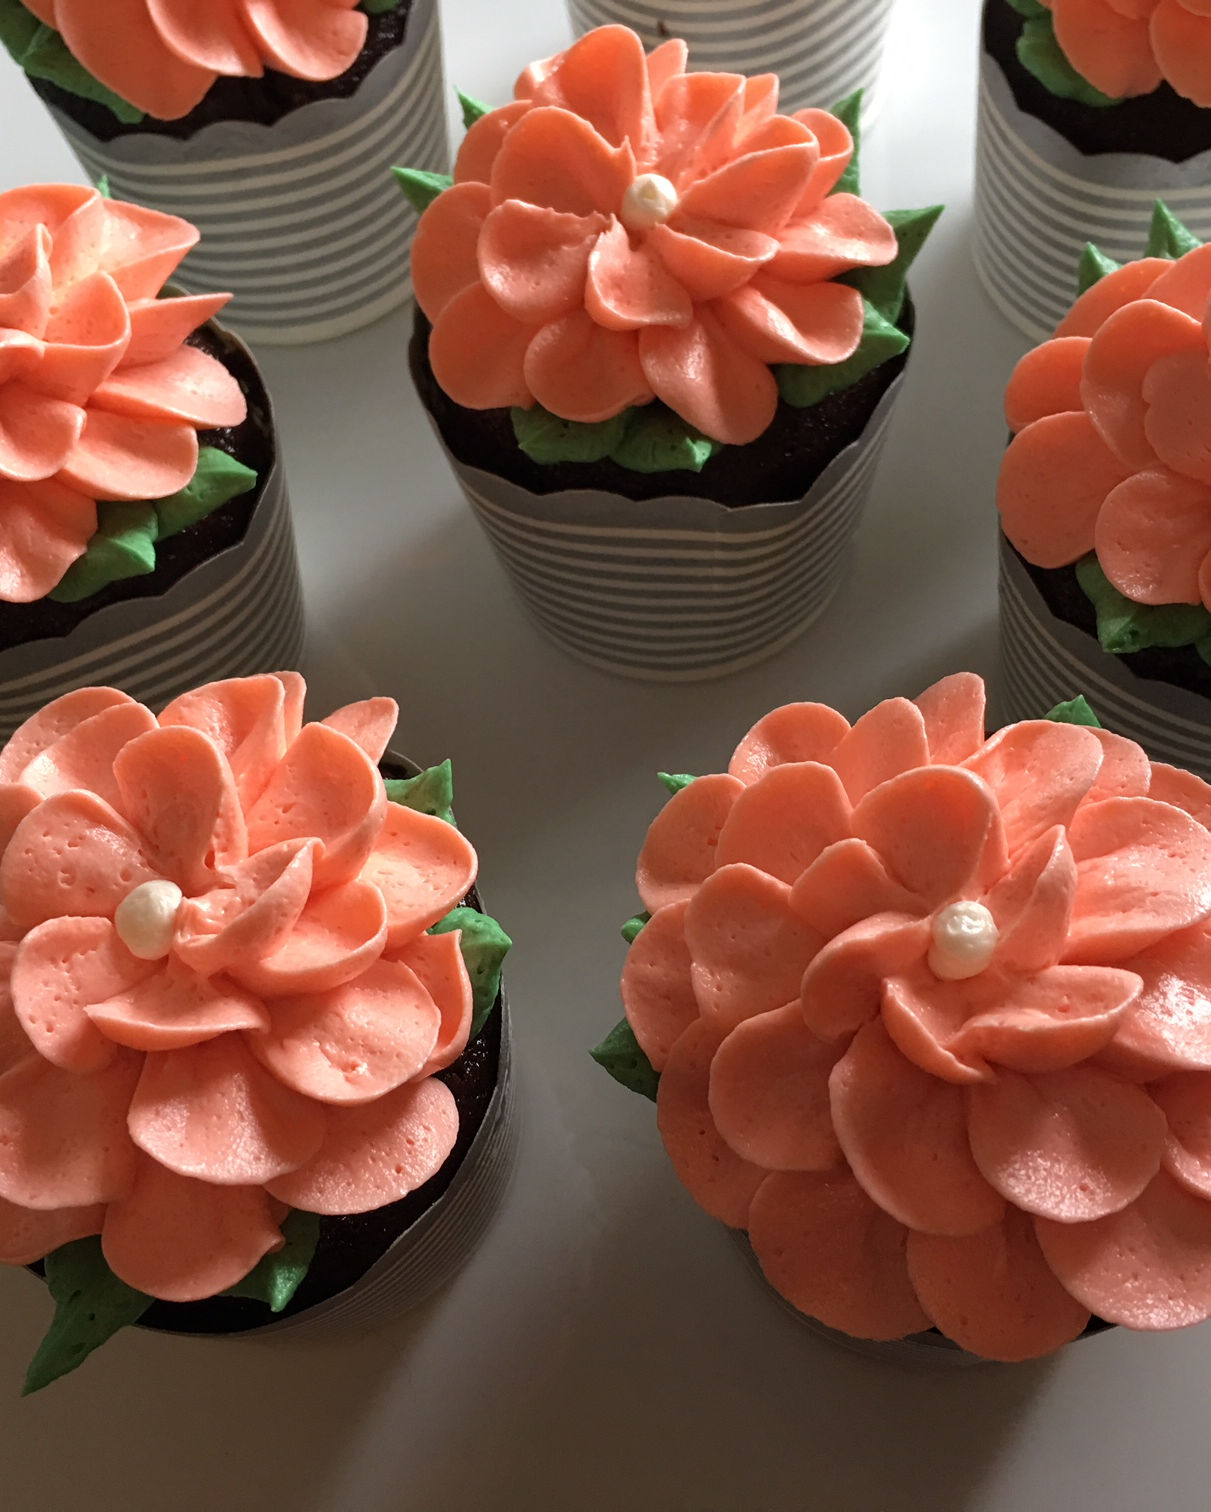 Elegant cakes, cupcakes and cookies that don't break the bank. These desserts are fresh baked and hand decorated.